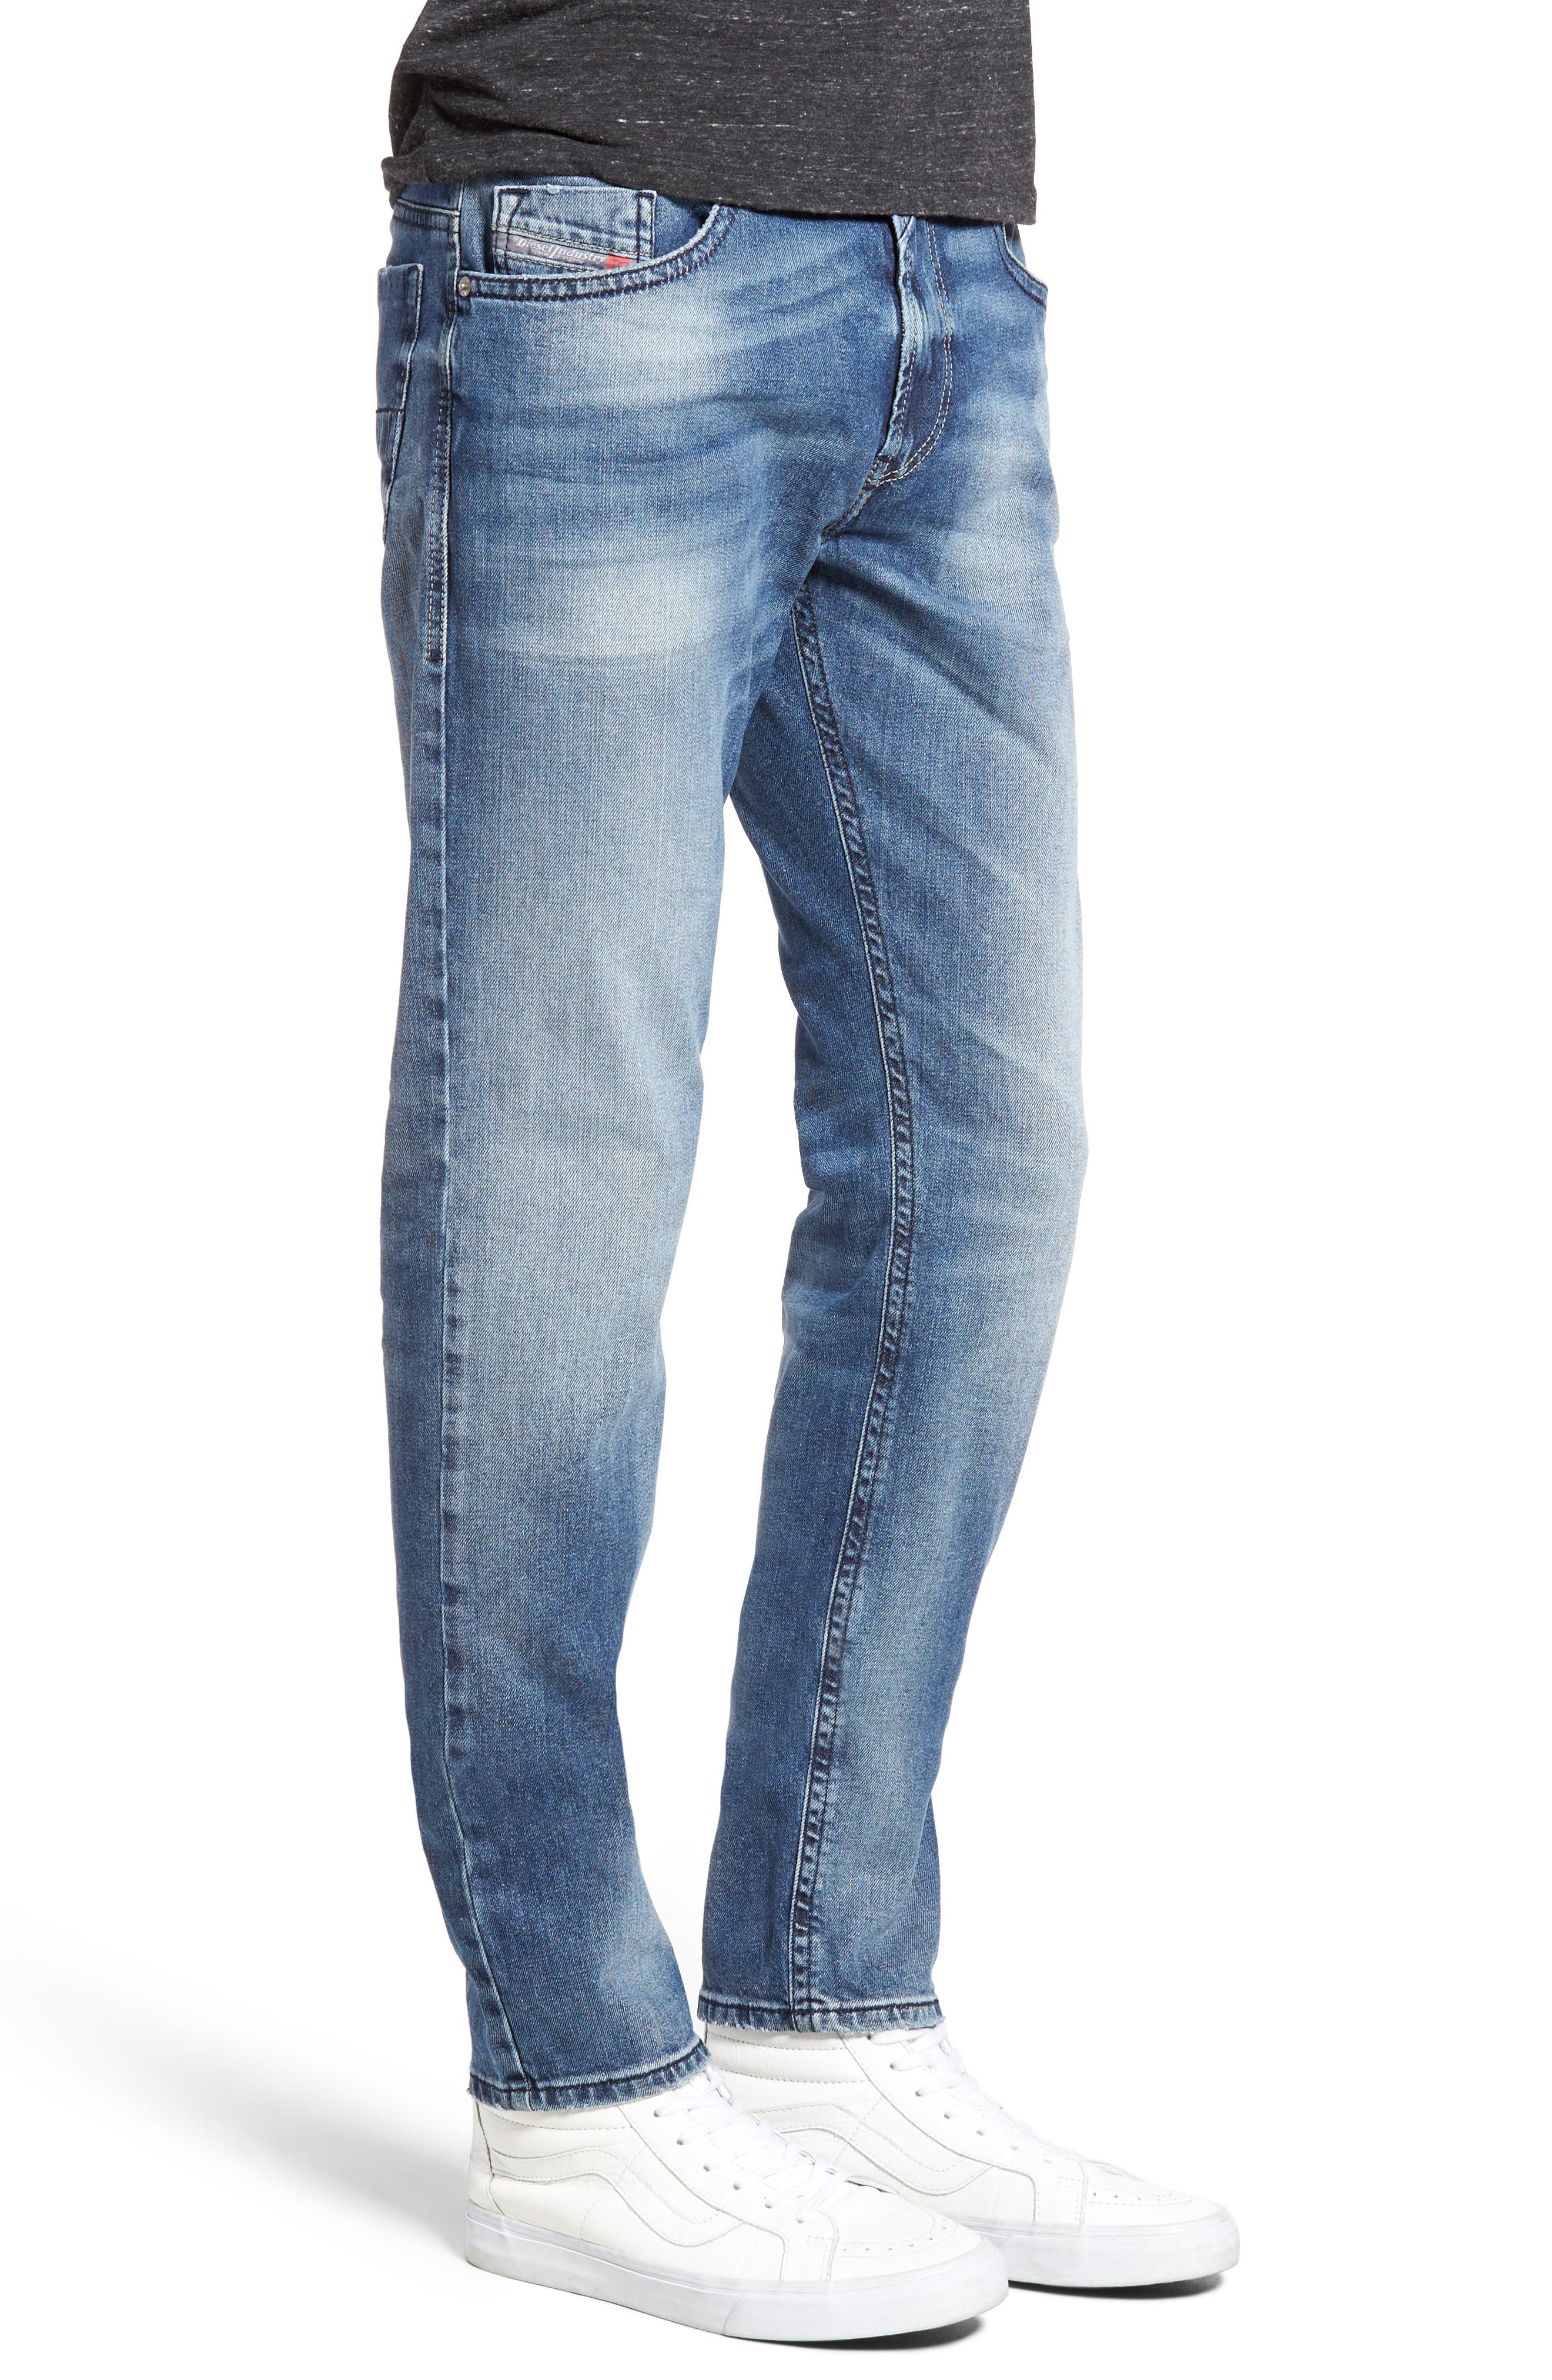 Thommer Skinny Fit Jeans,                             Alternate thumbnail 3, color,                             400